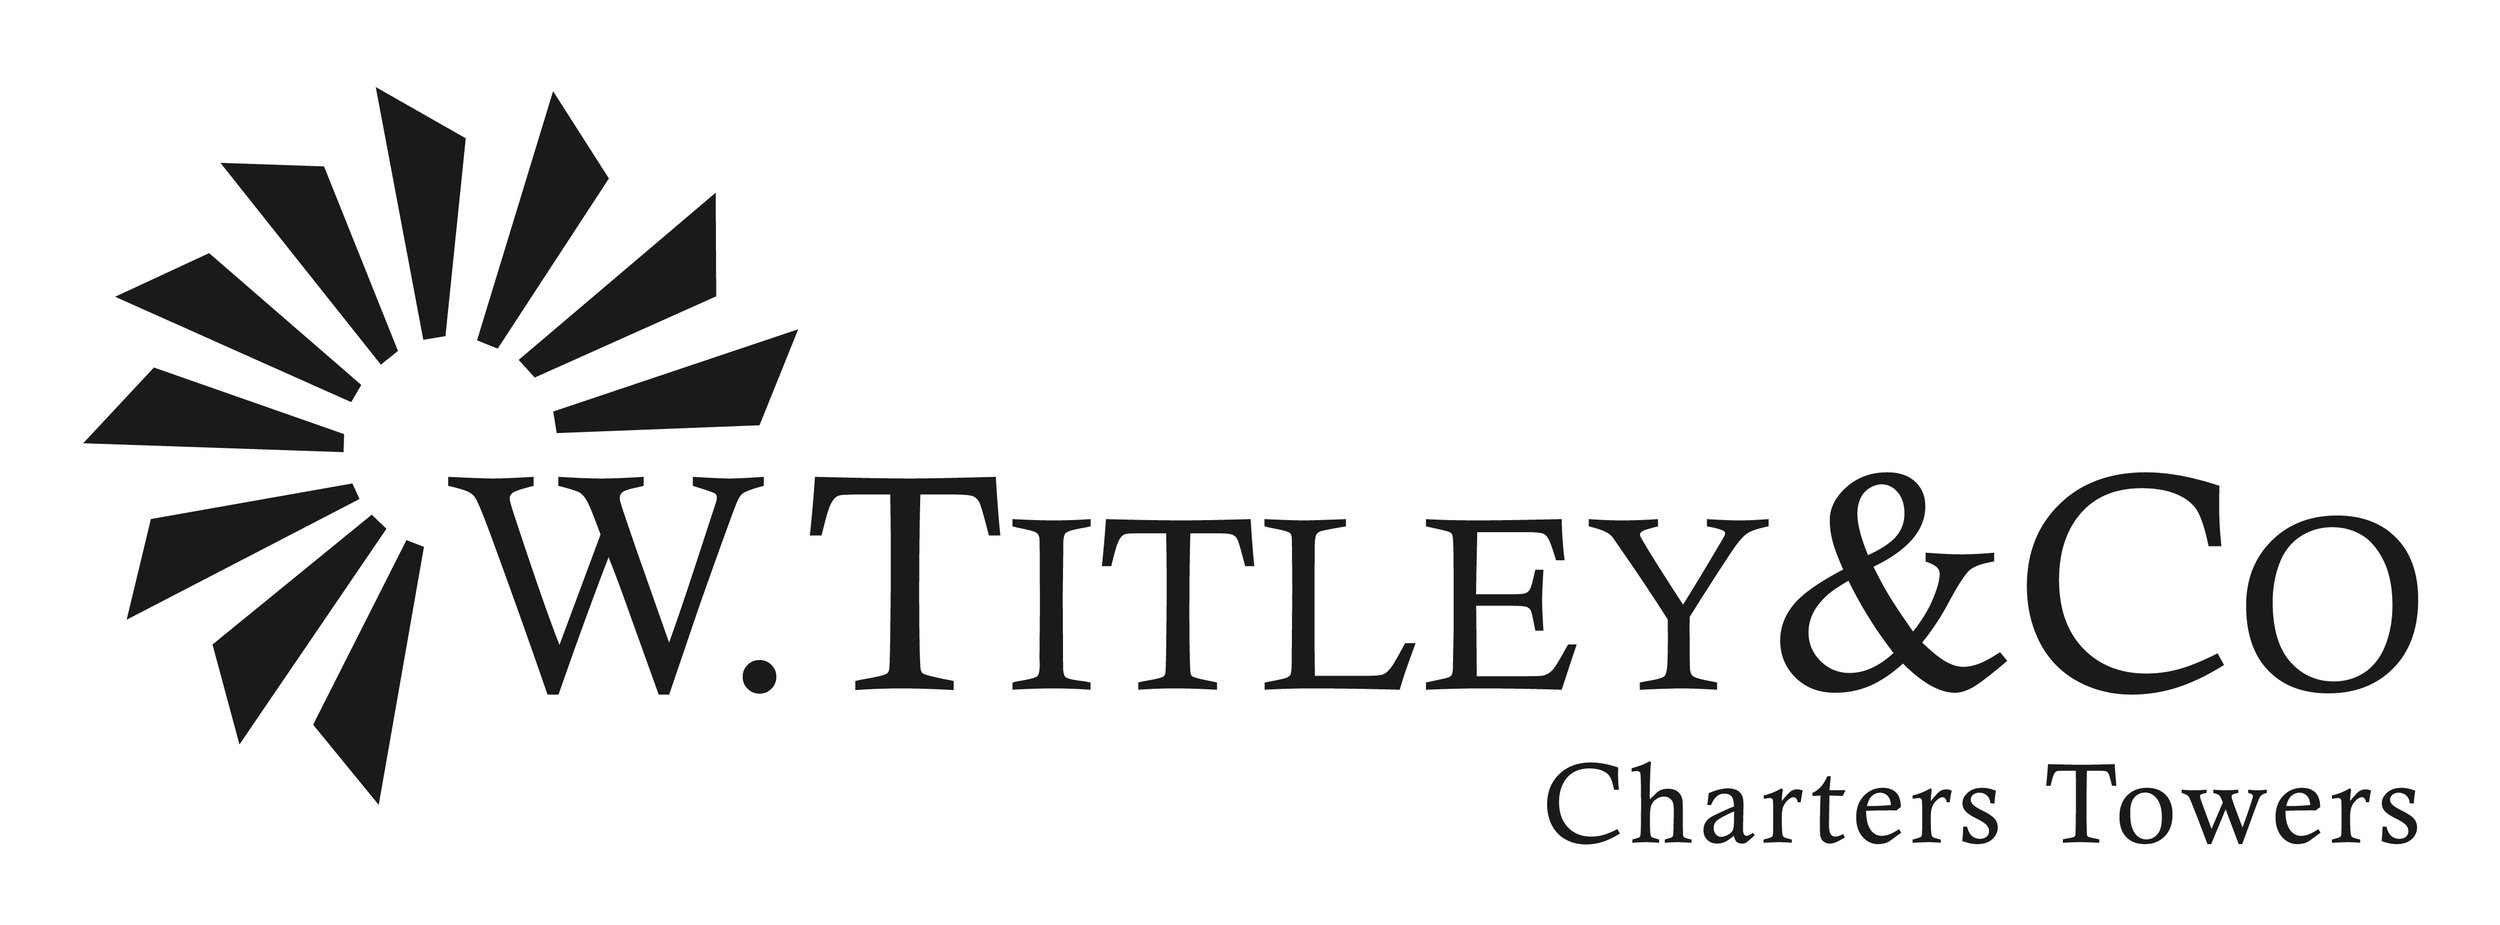 W.Titley&Co - W Titley & Co – Clothing hard working Australians since 1926.For four generations the Titley name has been synonymous with quality. First established by bootmaker William Titley in 1926, W Titley & Co has served country shoppers with quality clothing and work wear with customer satisfaction the number one priority.This family owned business is all about supporting the people that support them. Customers shopping with W Titley and Co can be assured of personal service, whether it is in person, over the phone, via mail-order or on the internet. We pride ourselves on our service and look forward to helping our customer get satisfaction.Visit their website.